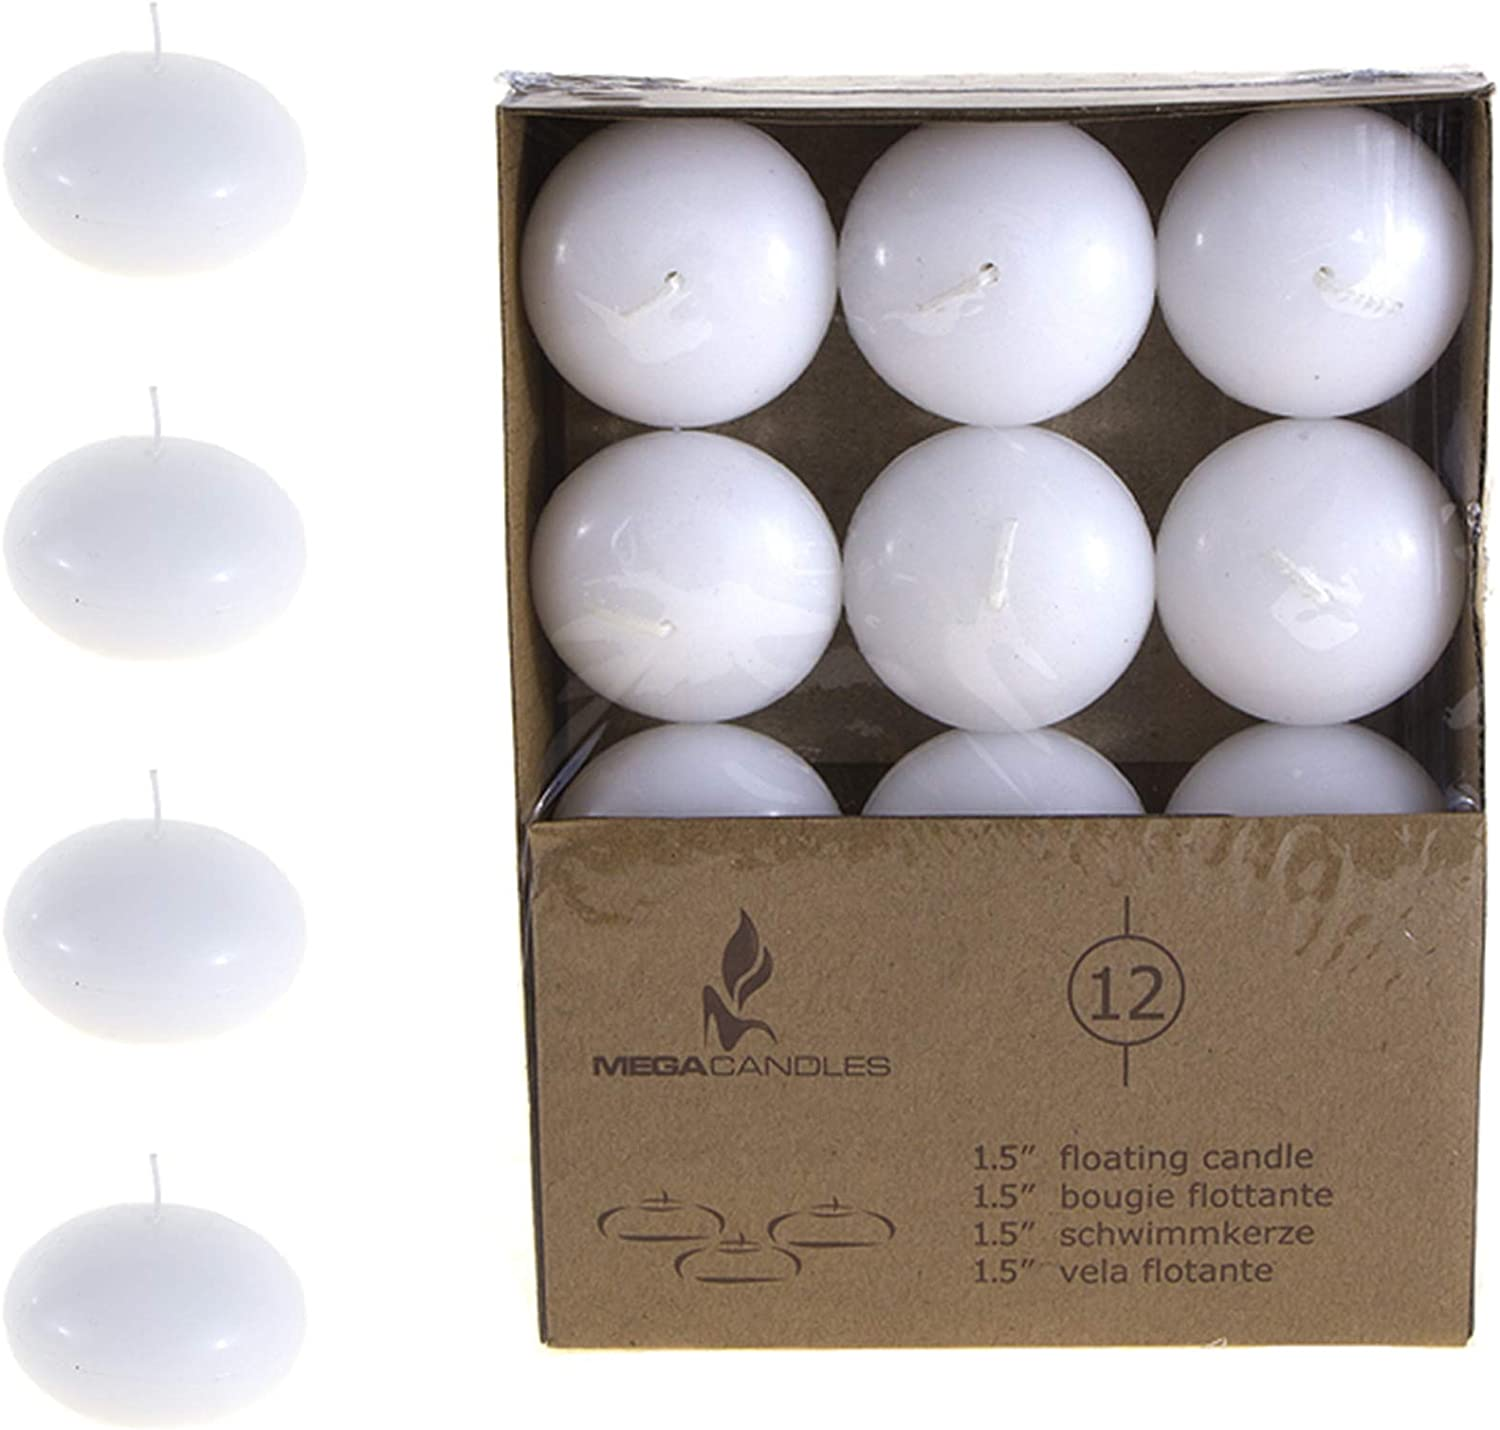 Mega Candles 12 pcs Unscented White Oakland Outstanding Mall Candle Hand P Floating Disc